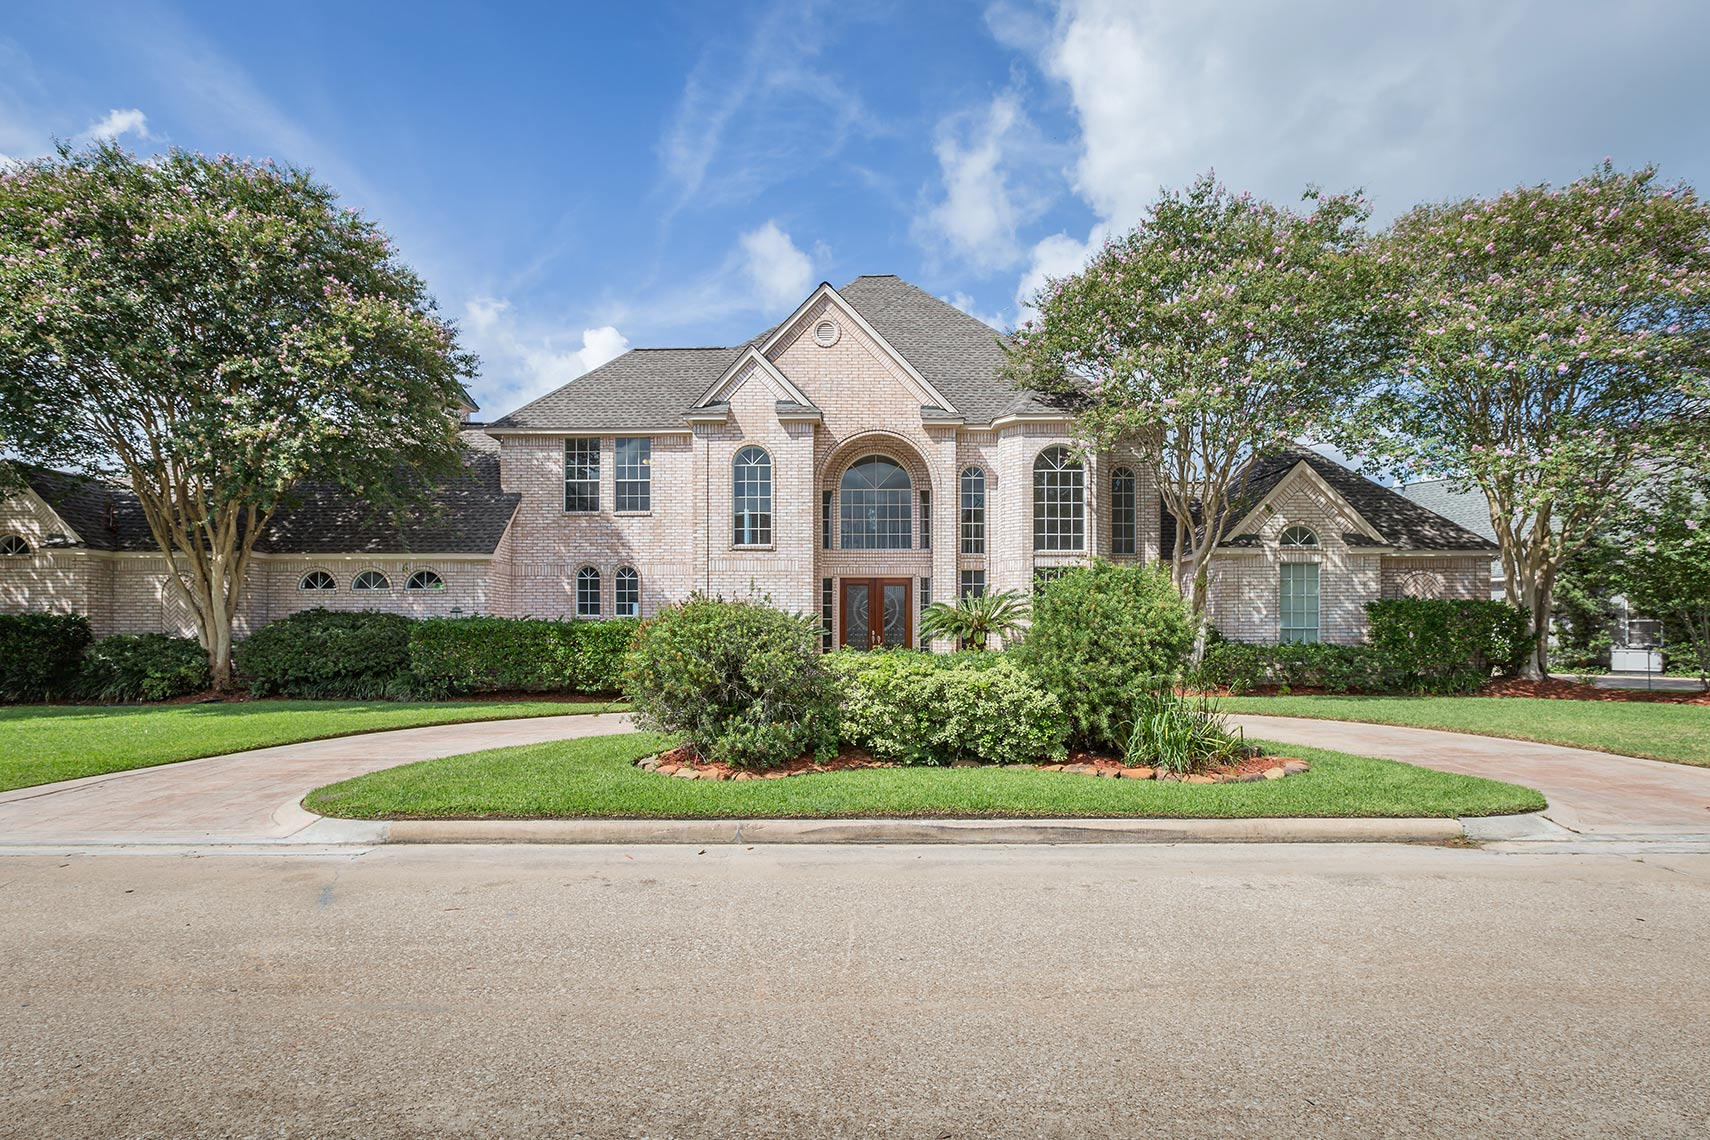 Front-exterior-of-a-custom-built-home-located-on-Lake-Conroe-architectural-photography